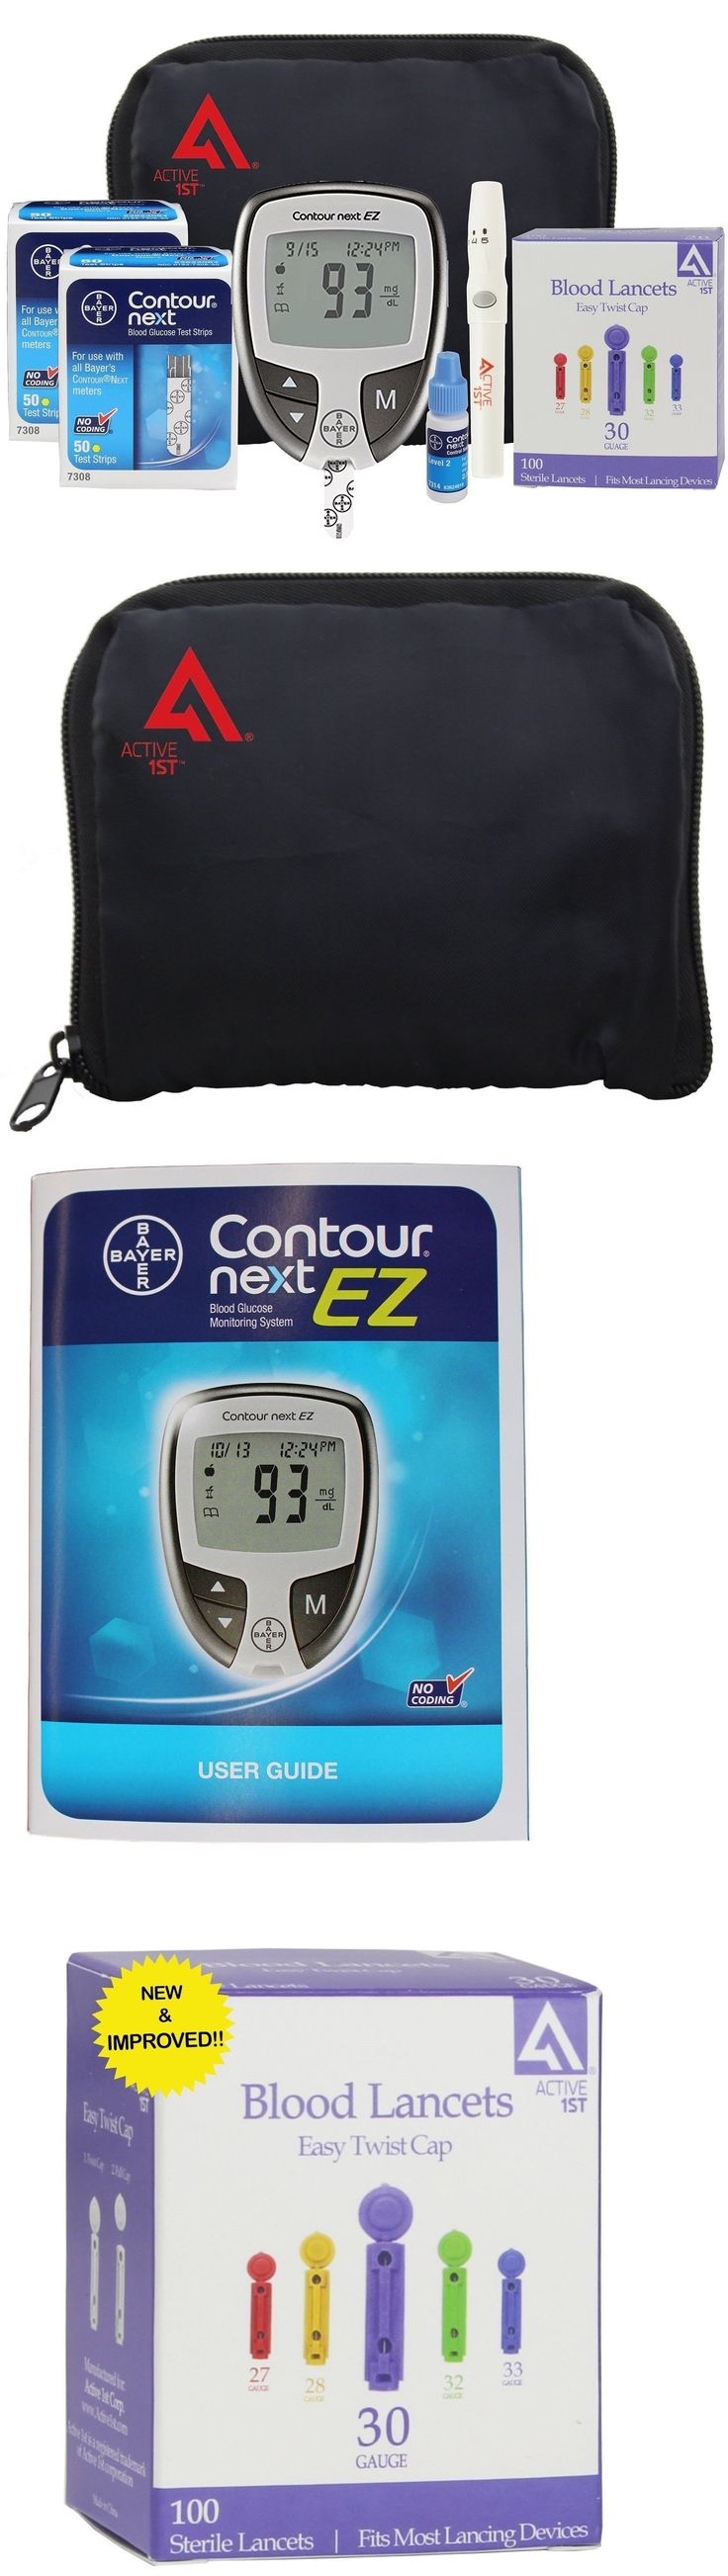 Monitoring Kits: Active1st Bayer Contour Next Complete Diabetes Testing Kit 100 Strips -> BUY IT NOW ONLY: $93.32 on eBay!